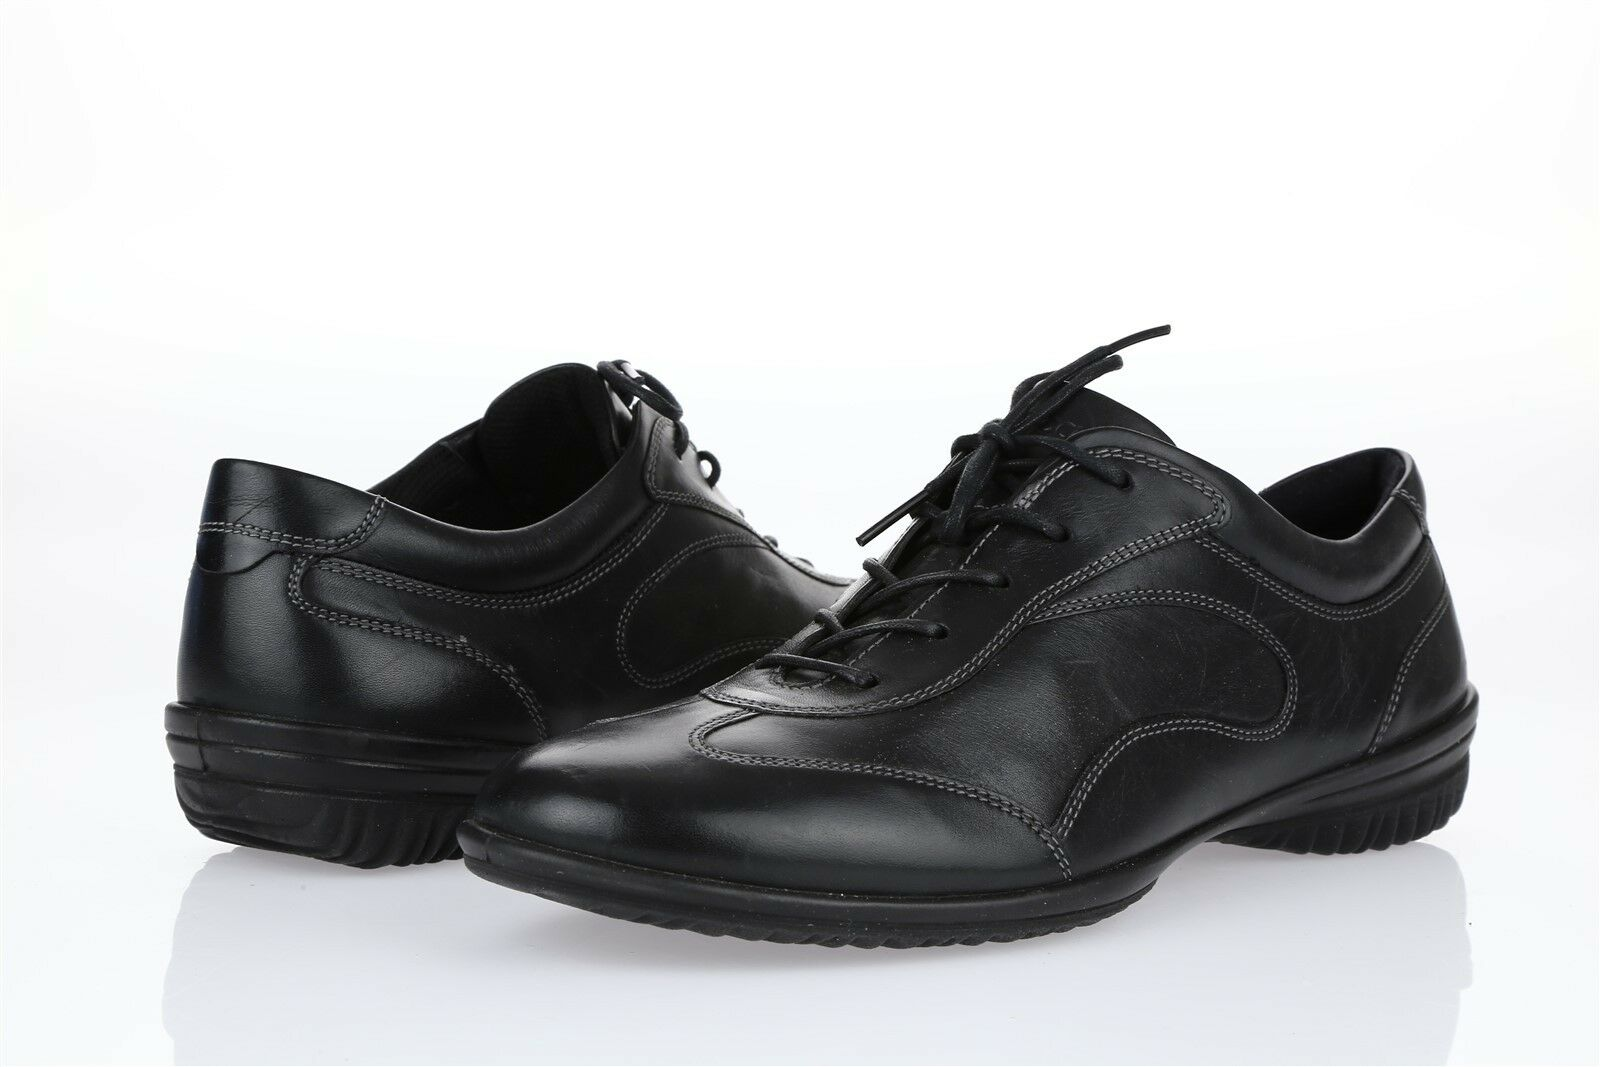 Womens ECCO 207828 Black Leather Fashion Sneakers Sz. 41 NEW